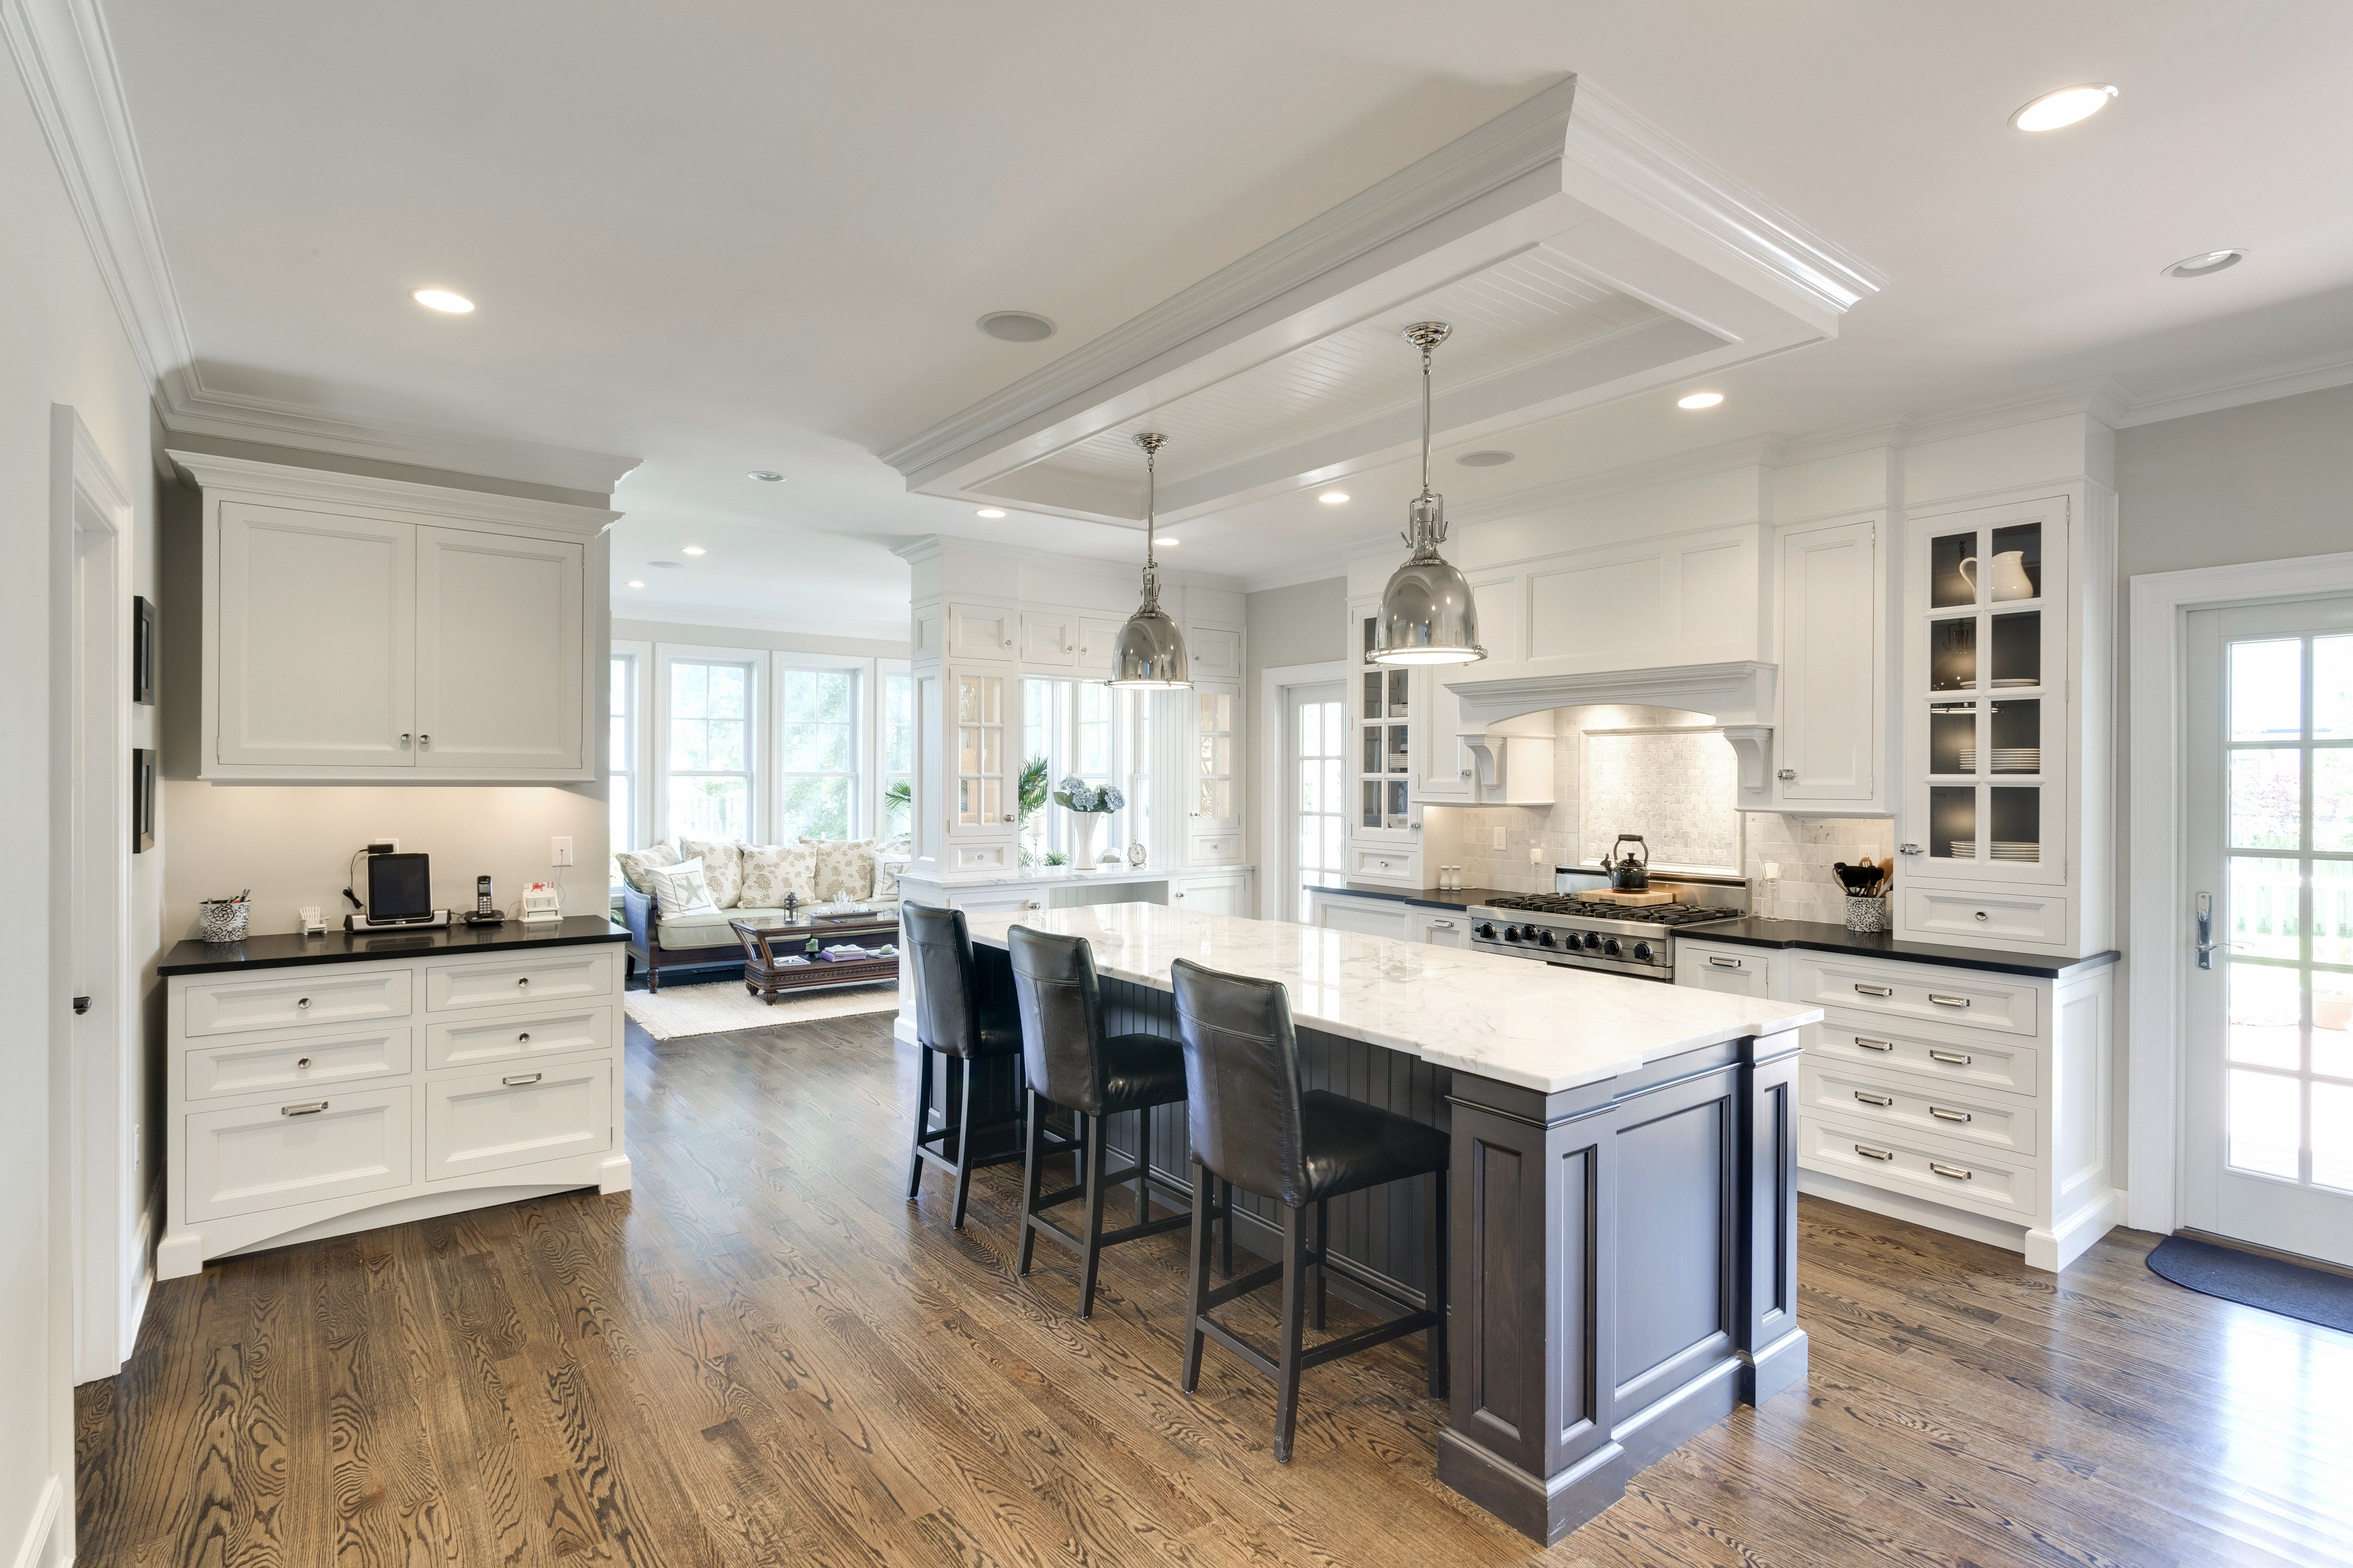 Kitchen upgrades you must have | Ideas for the house | Pinterest ...